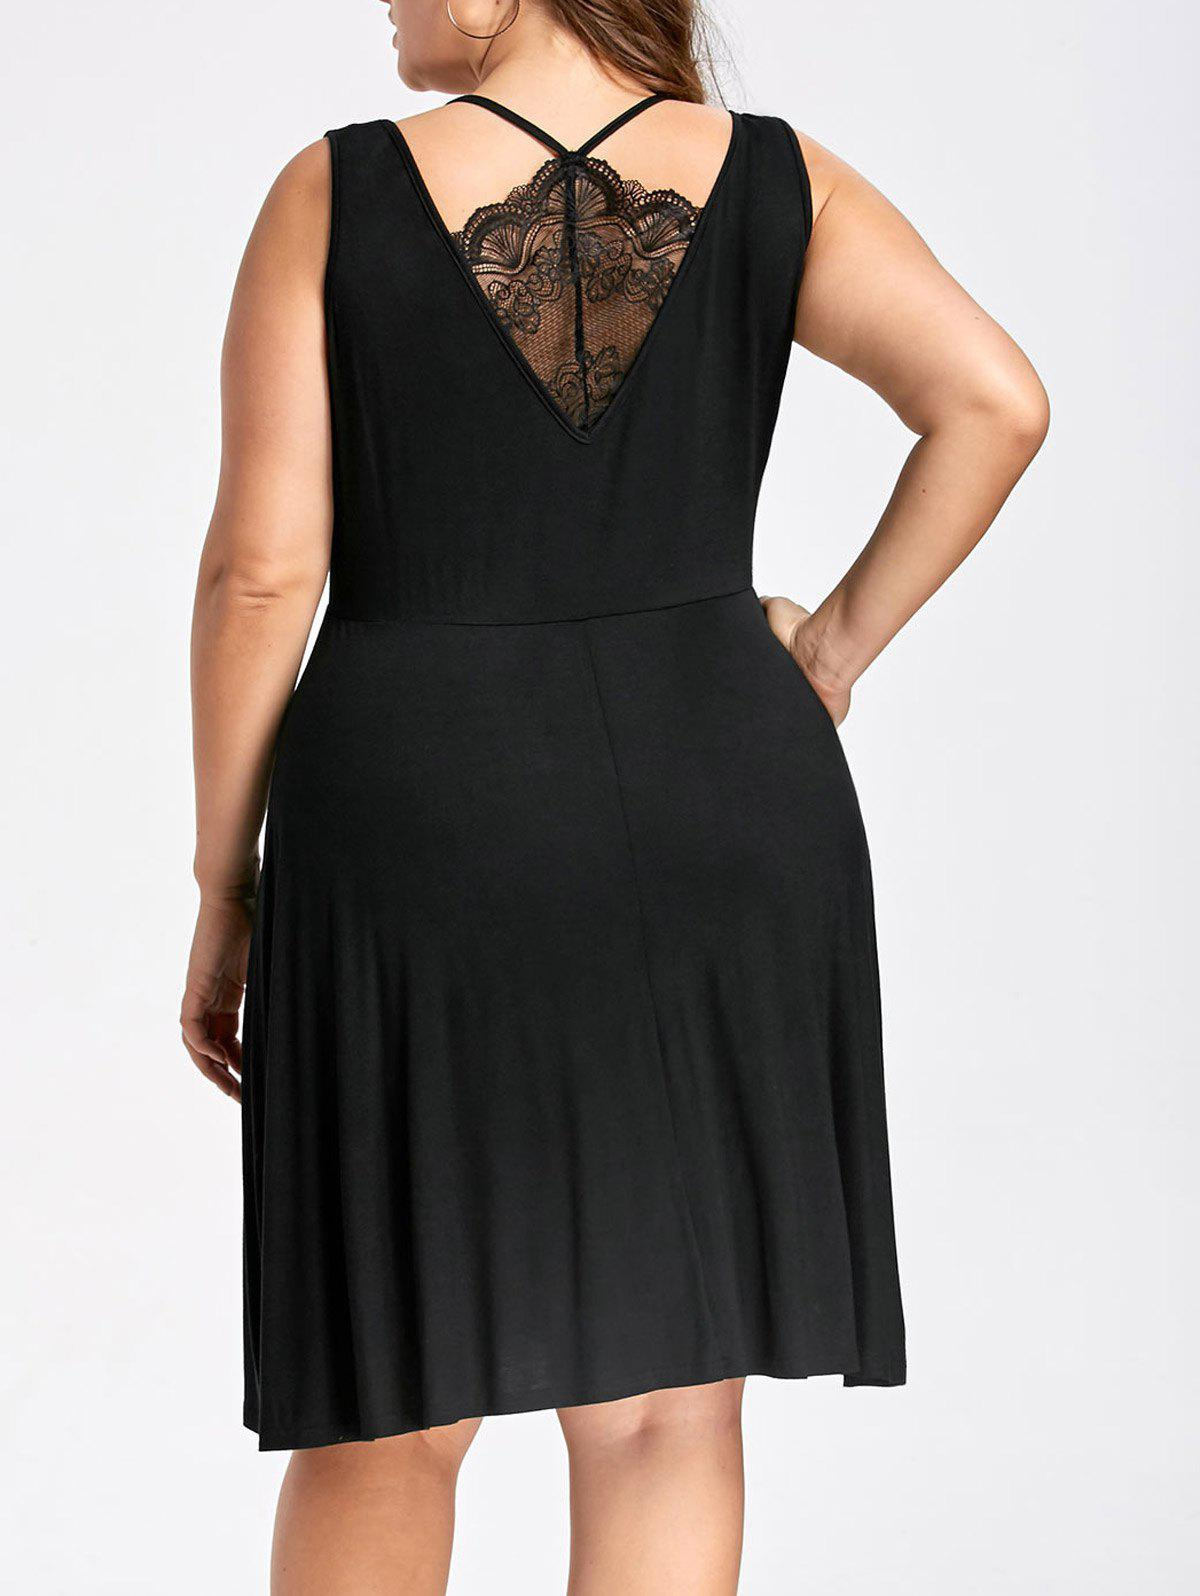 Plus Size Sleeveless Lace Trim Skater DressWOMEN<br><br>Size: 4XL; Color: BLACK; Style: Brief; Material: Polyester,Spandex; Silhouette: A-Line; Dresses Length: Knee-Length; Neckline: V-Neck; Sleeve Length: Sleeveless; Embellishment: Lace; Pattern Type: Solid Color; With Belt: No; Season: Fall,Spring,Summer; Weight: 0.3300kg; Package Contents: 1 x Dress;